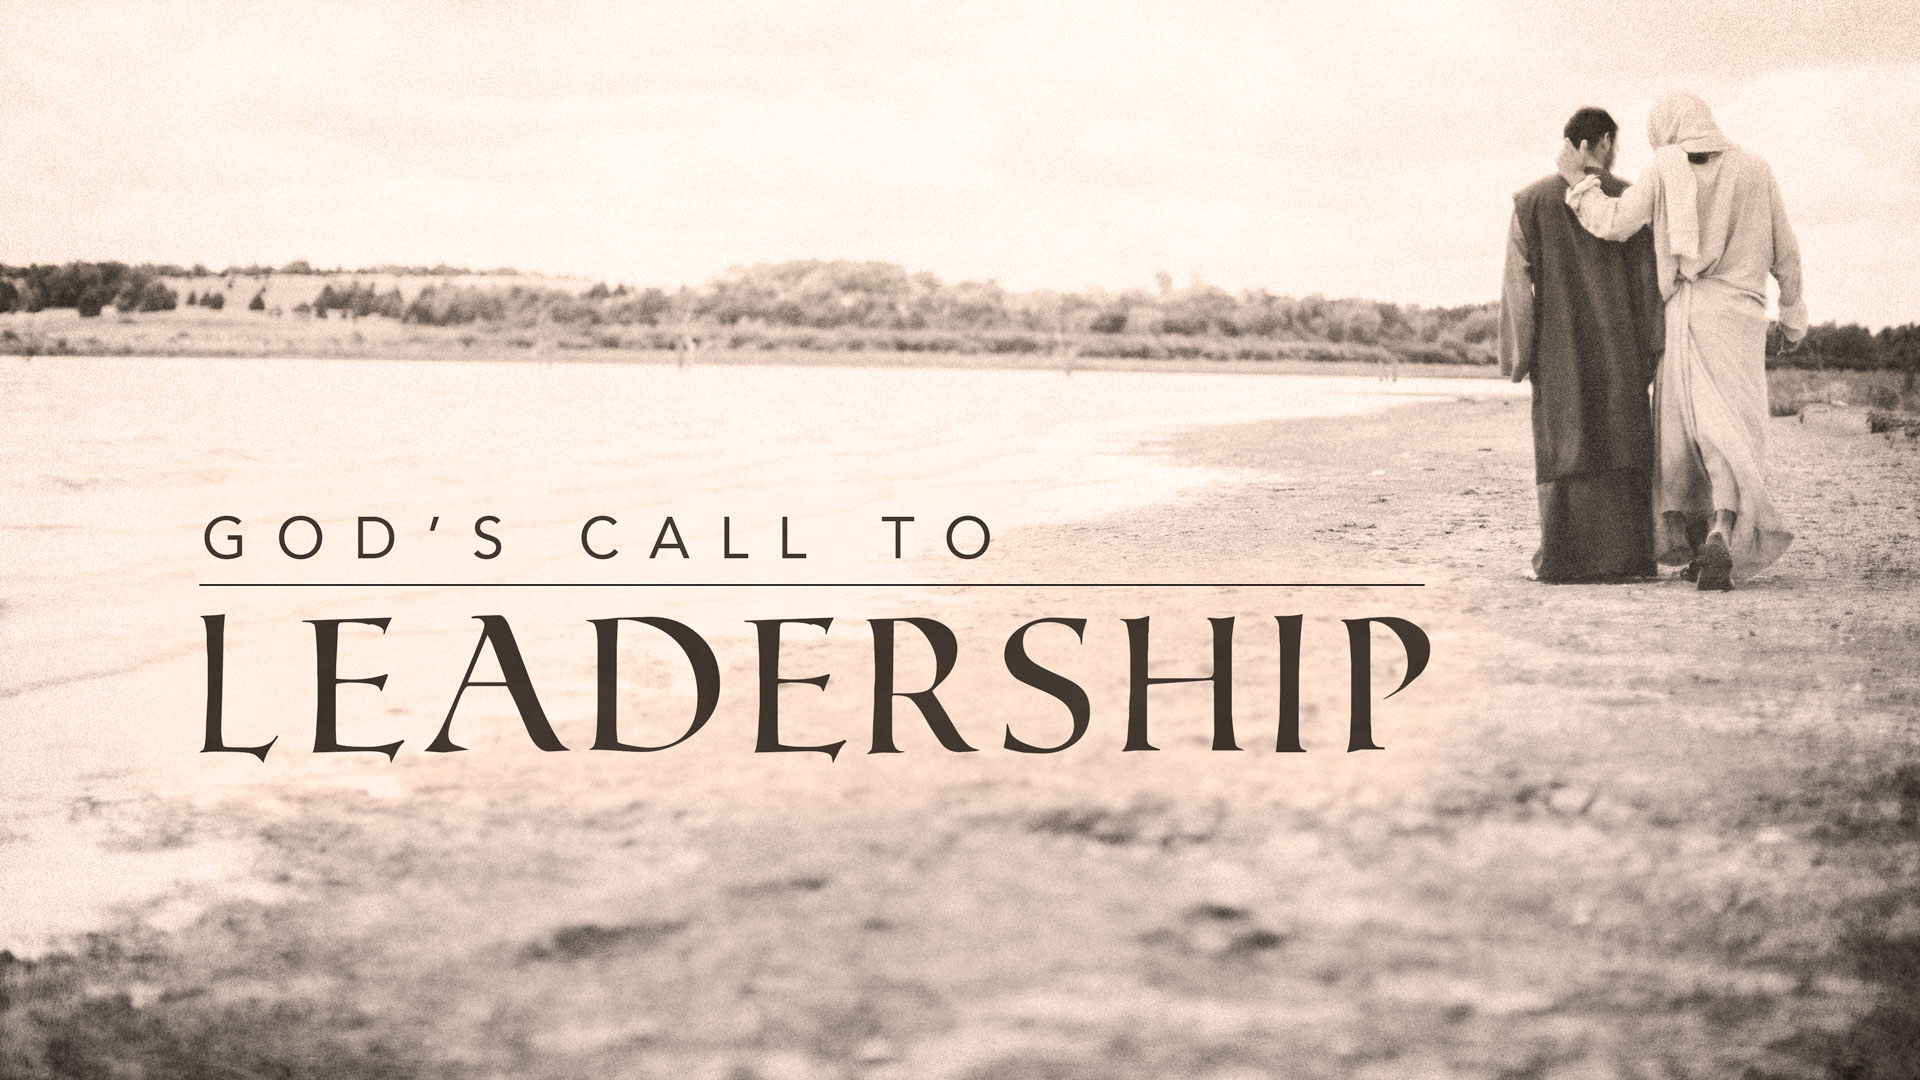 CALL TO LEADERSHIP